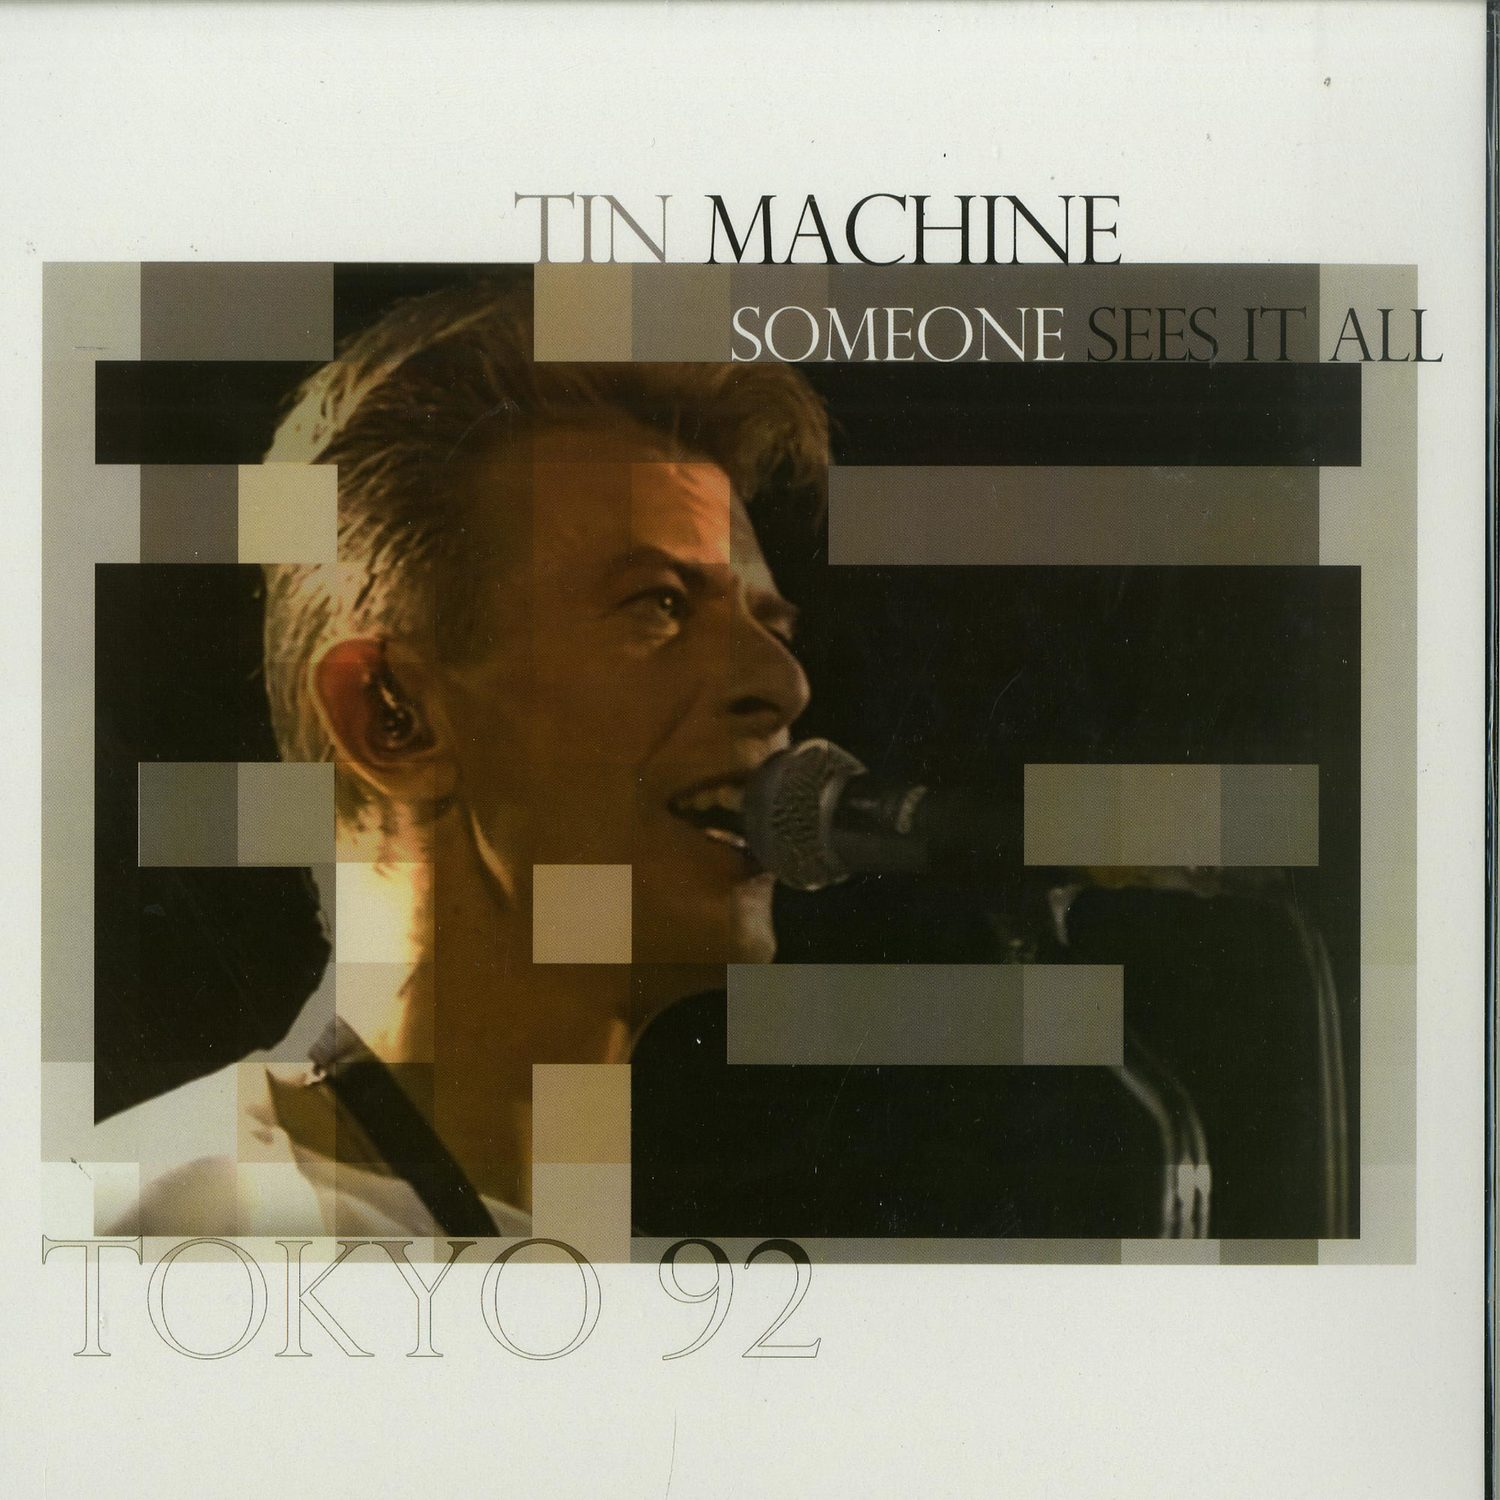 David Bowie & Tin Machine - SOMEONE SEES IT ALL